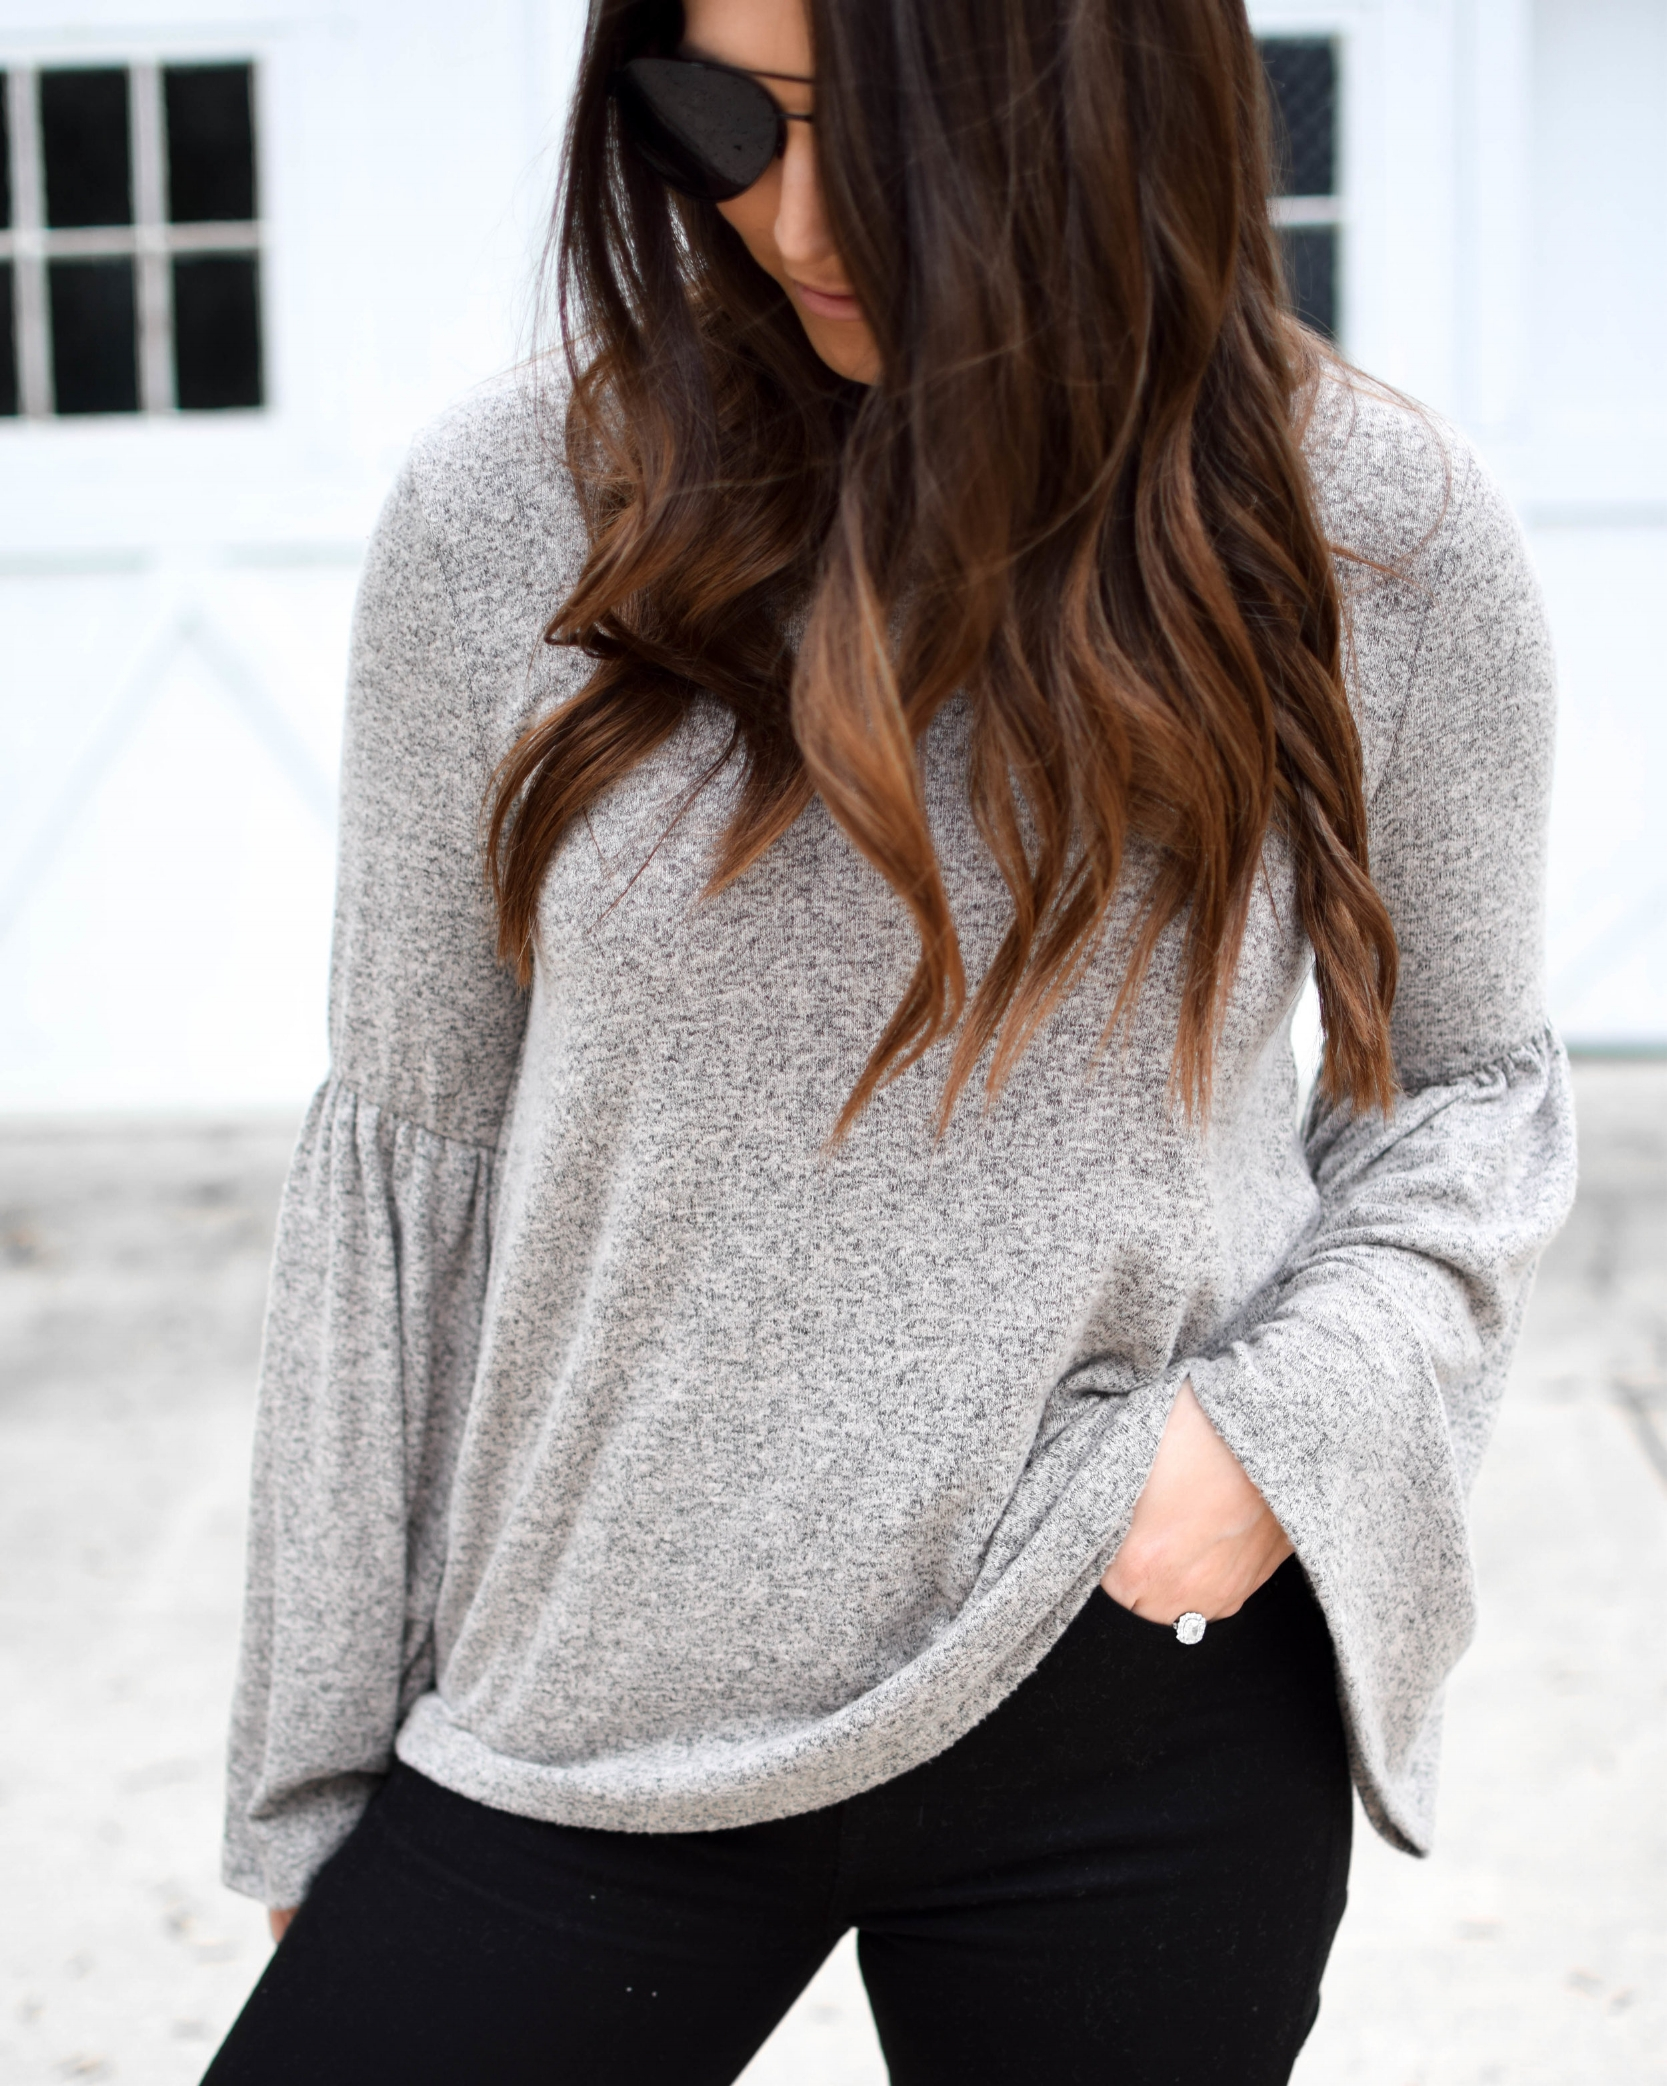 fall fashion / fall outfit idea / fall outfit inspiration / bell sleeve top for fall / black high rise denim